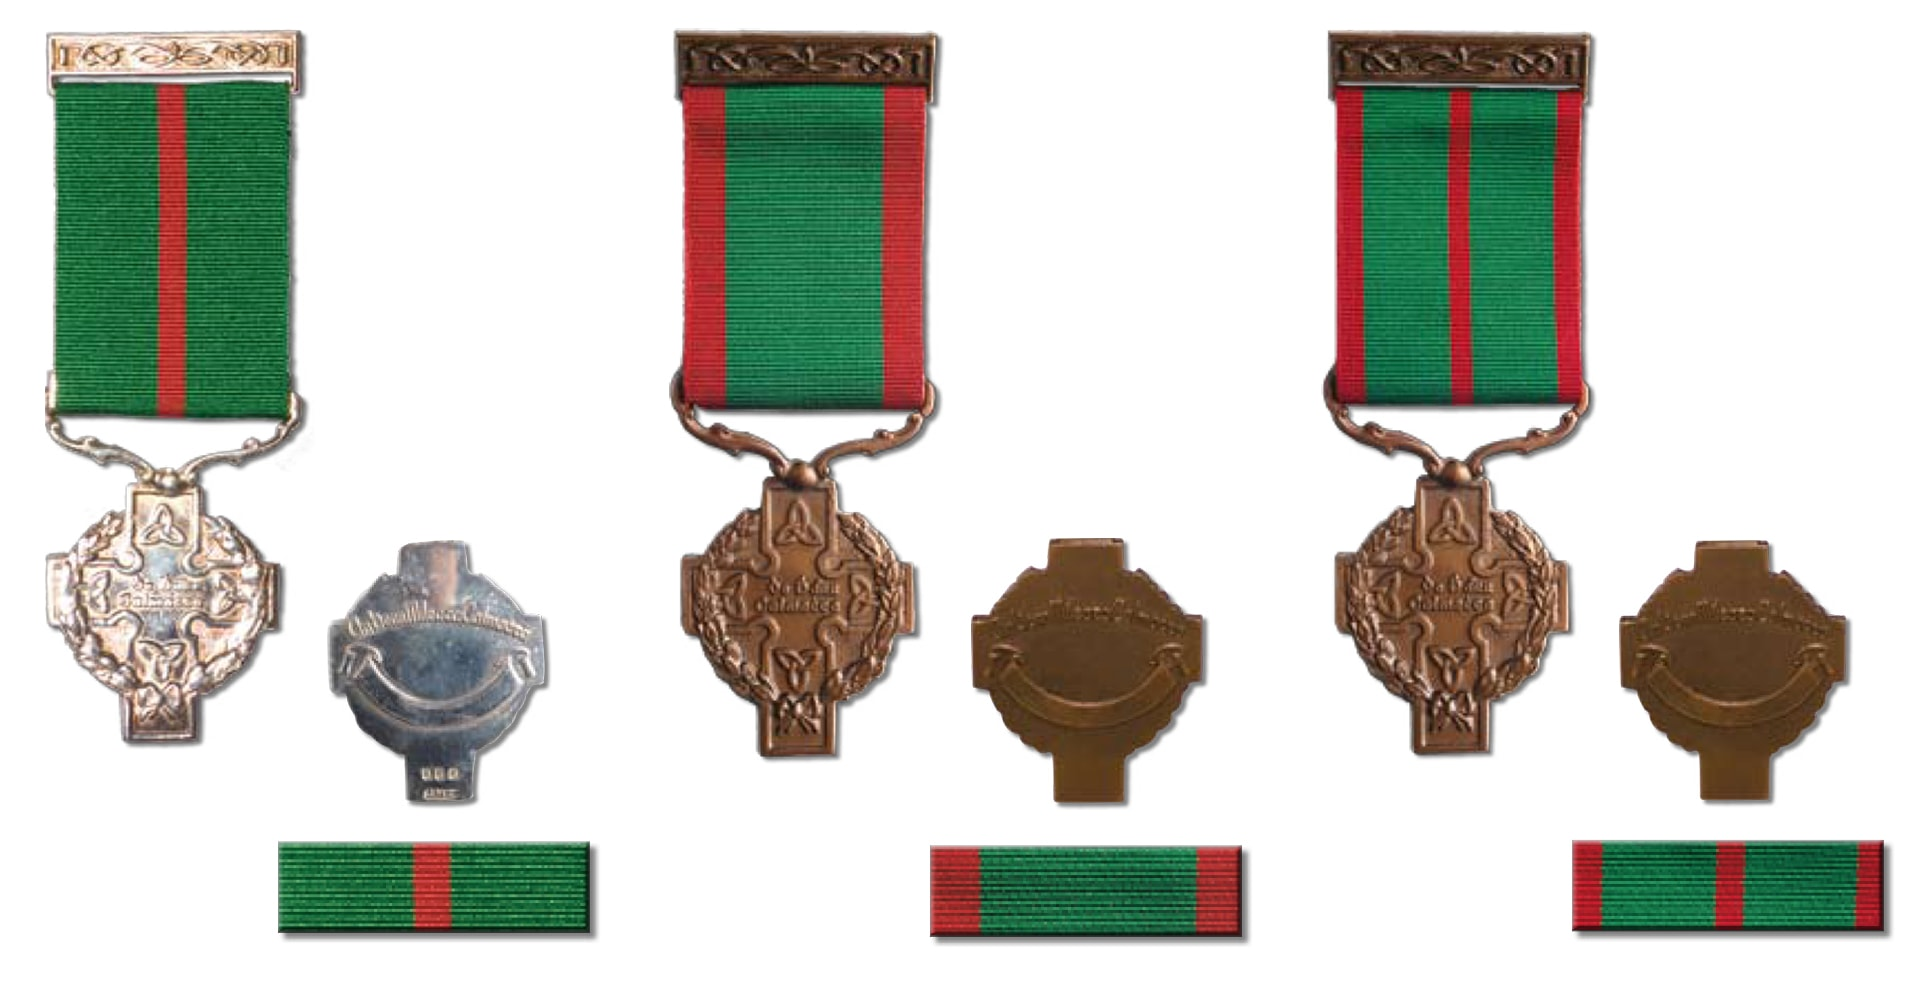 Military Medal for Gallantry (MMG)